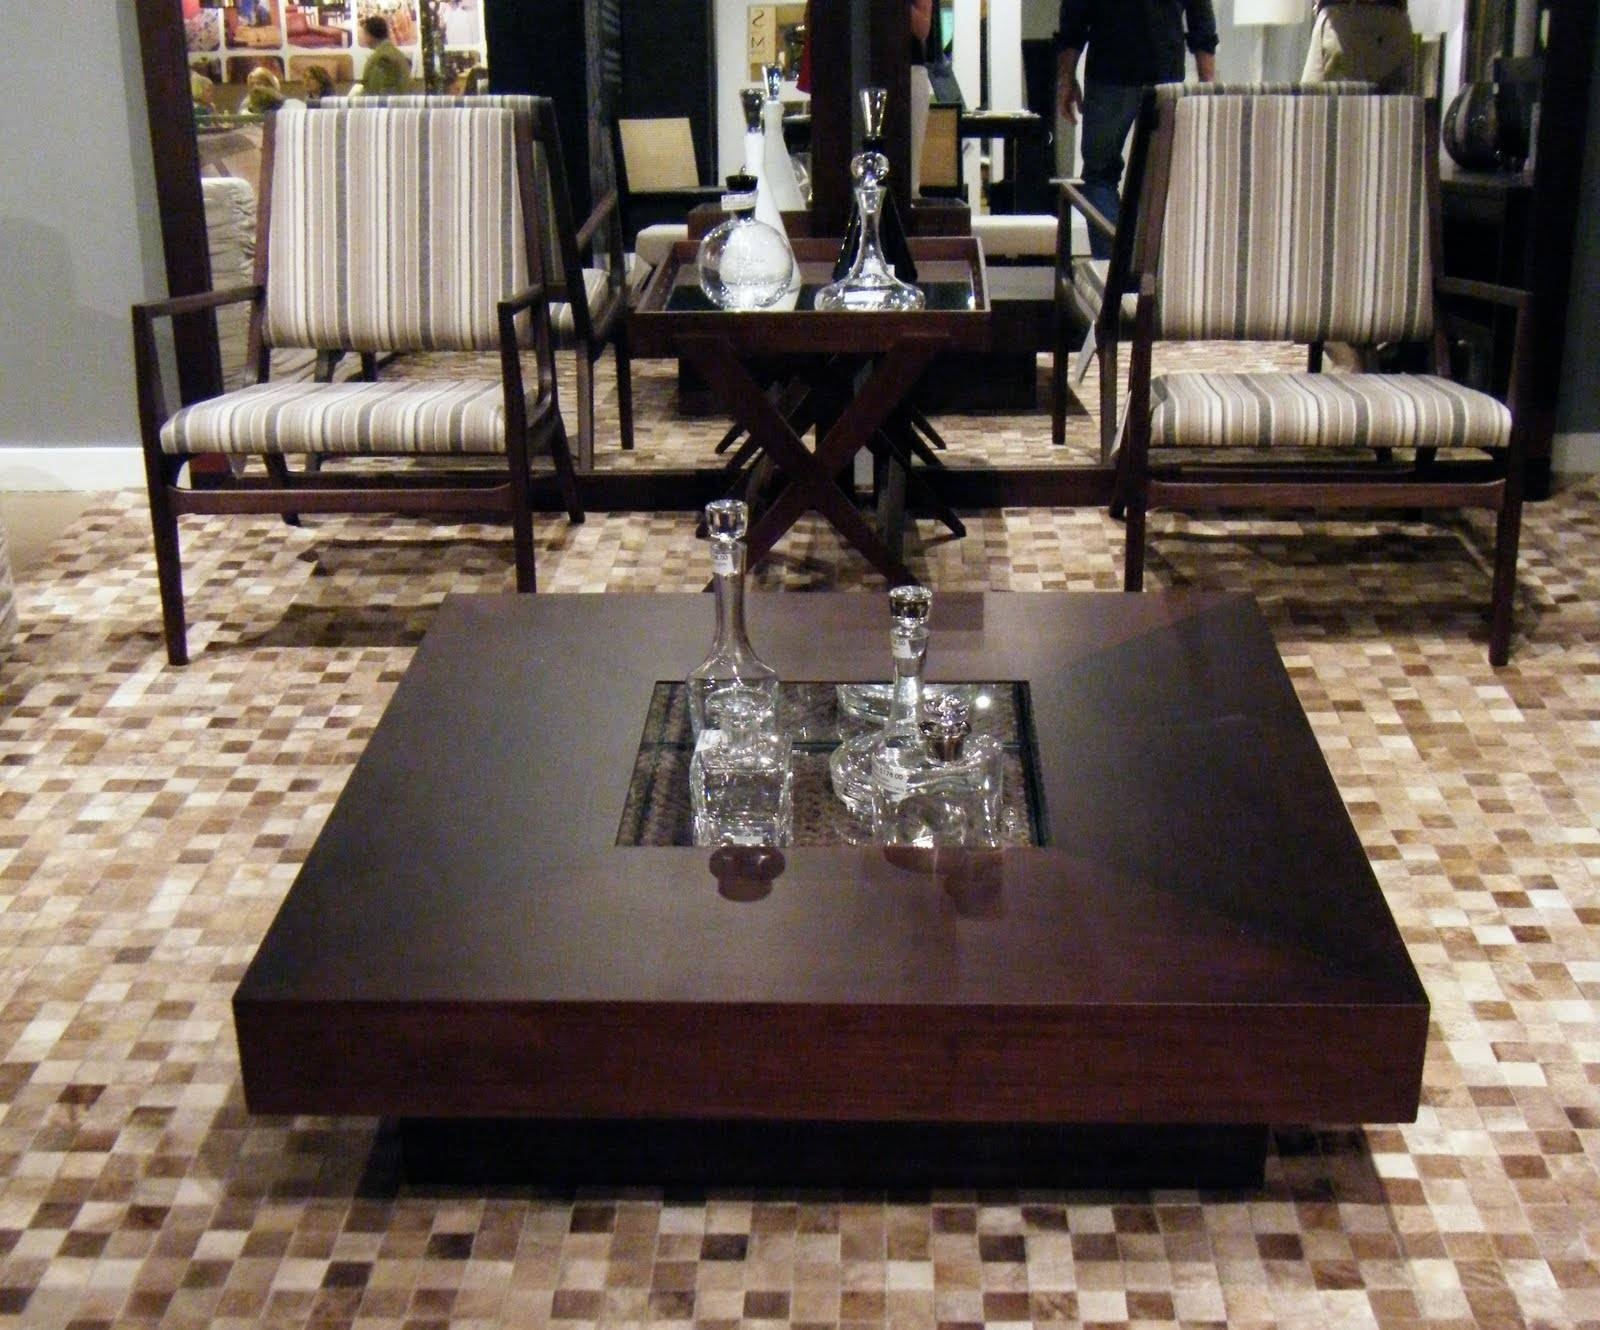 Modern Low Profile Coffee Tables | Coffee Tables Decoration Throughout Square Low Coffee Tables (View 16 of 20)